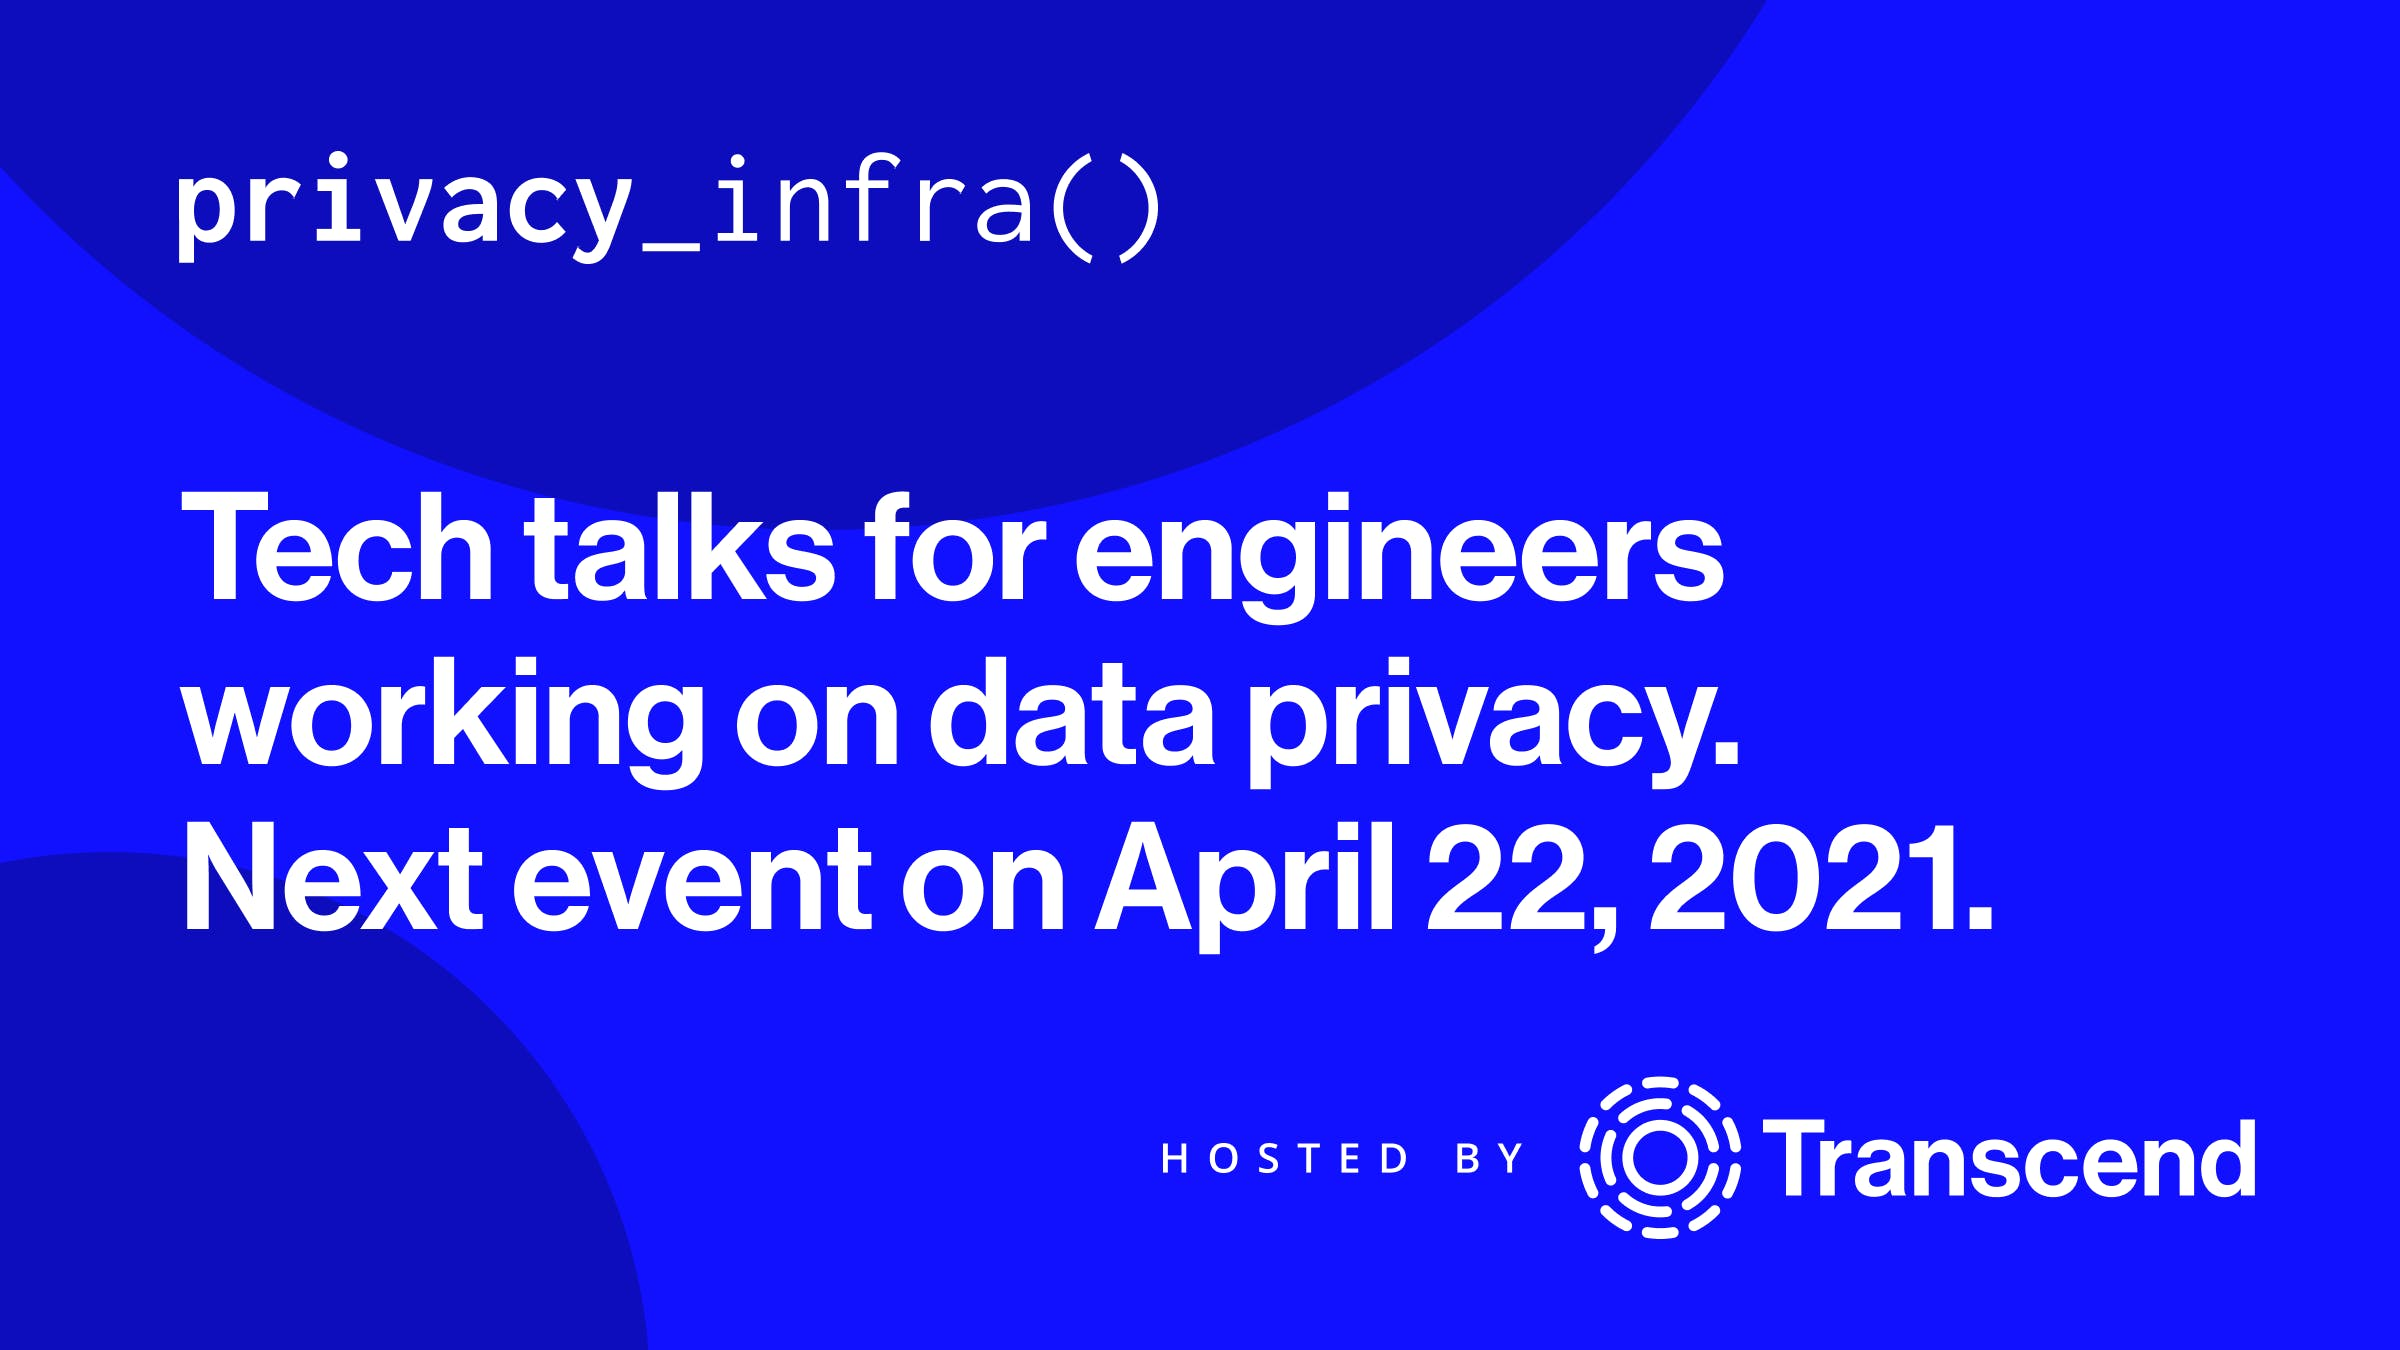 An image promoting the next event for Privacy_Infra() on April 22, 2021.